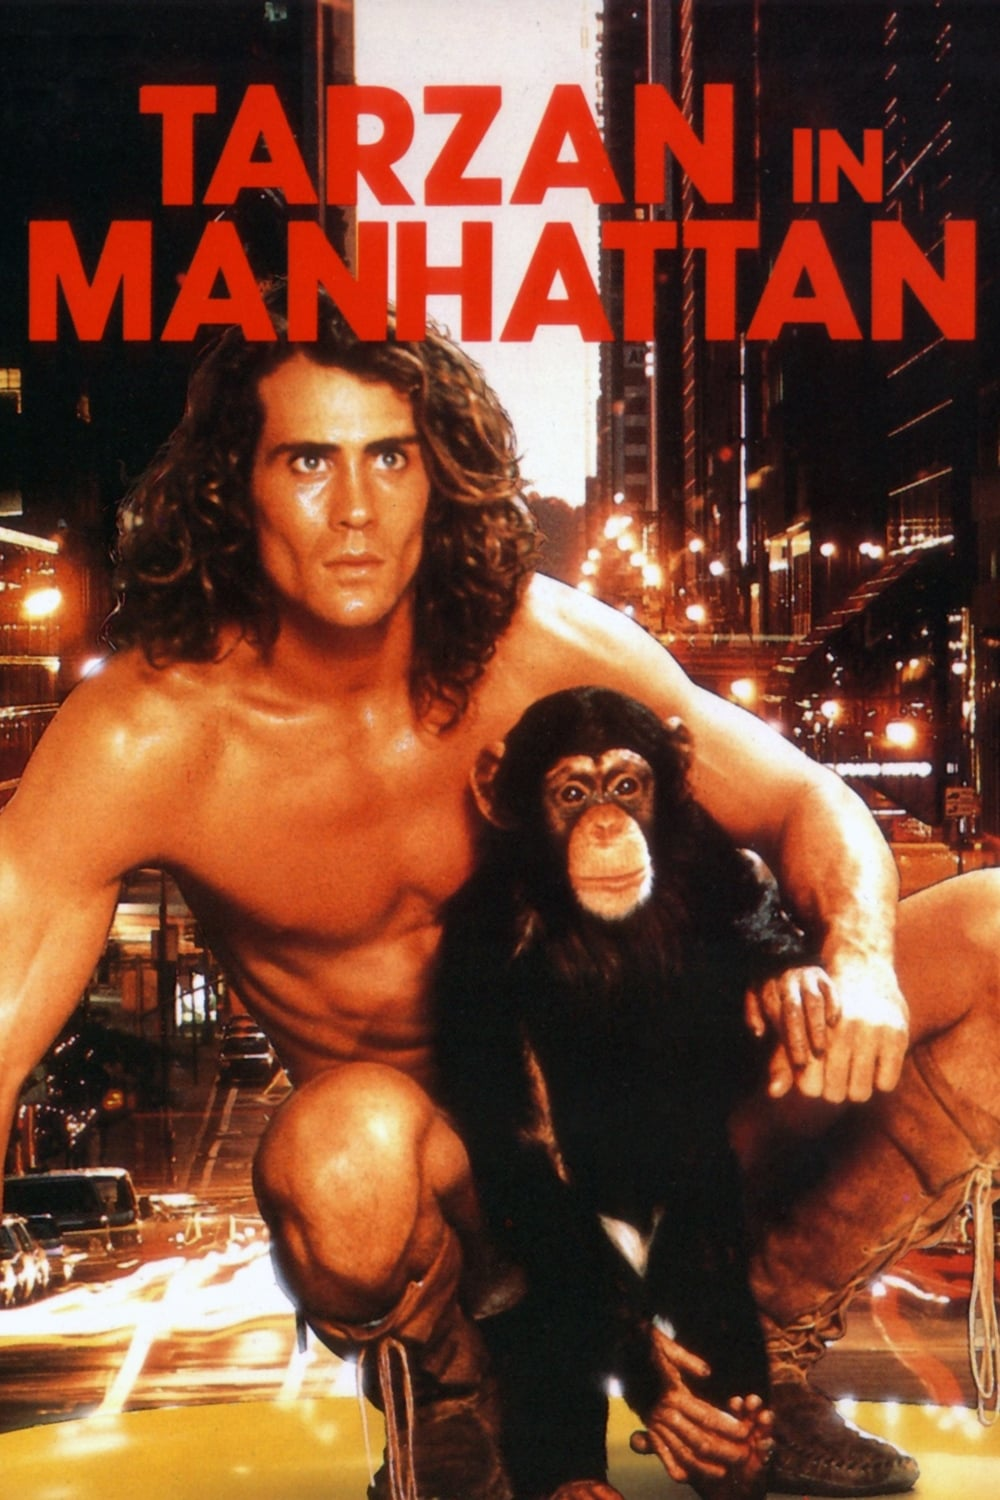 Tarzan in Manhattan (1989)